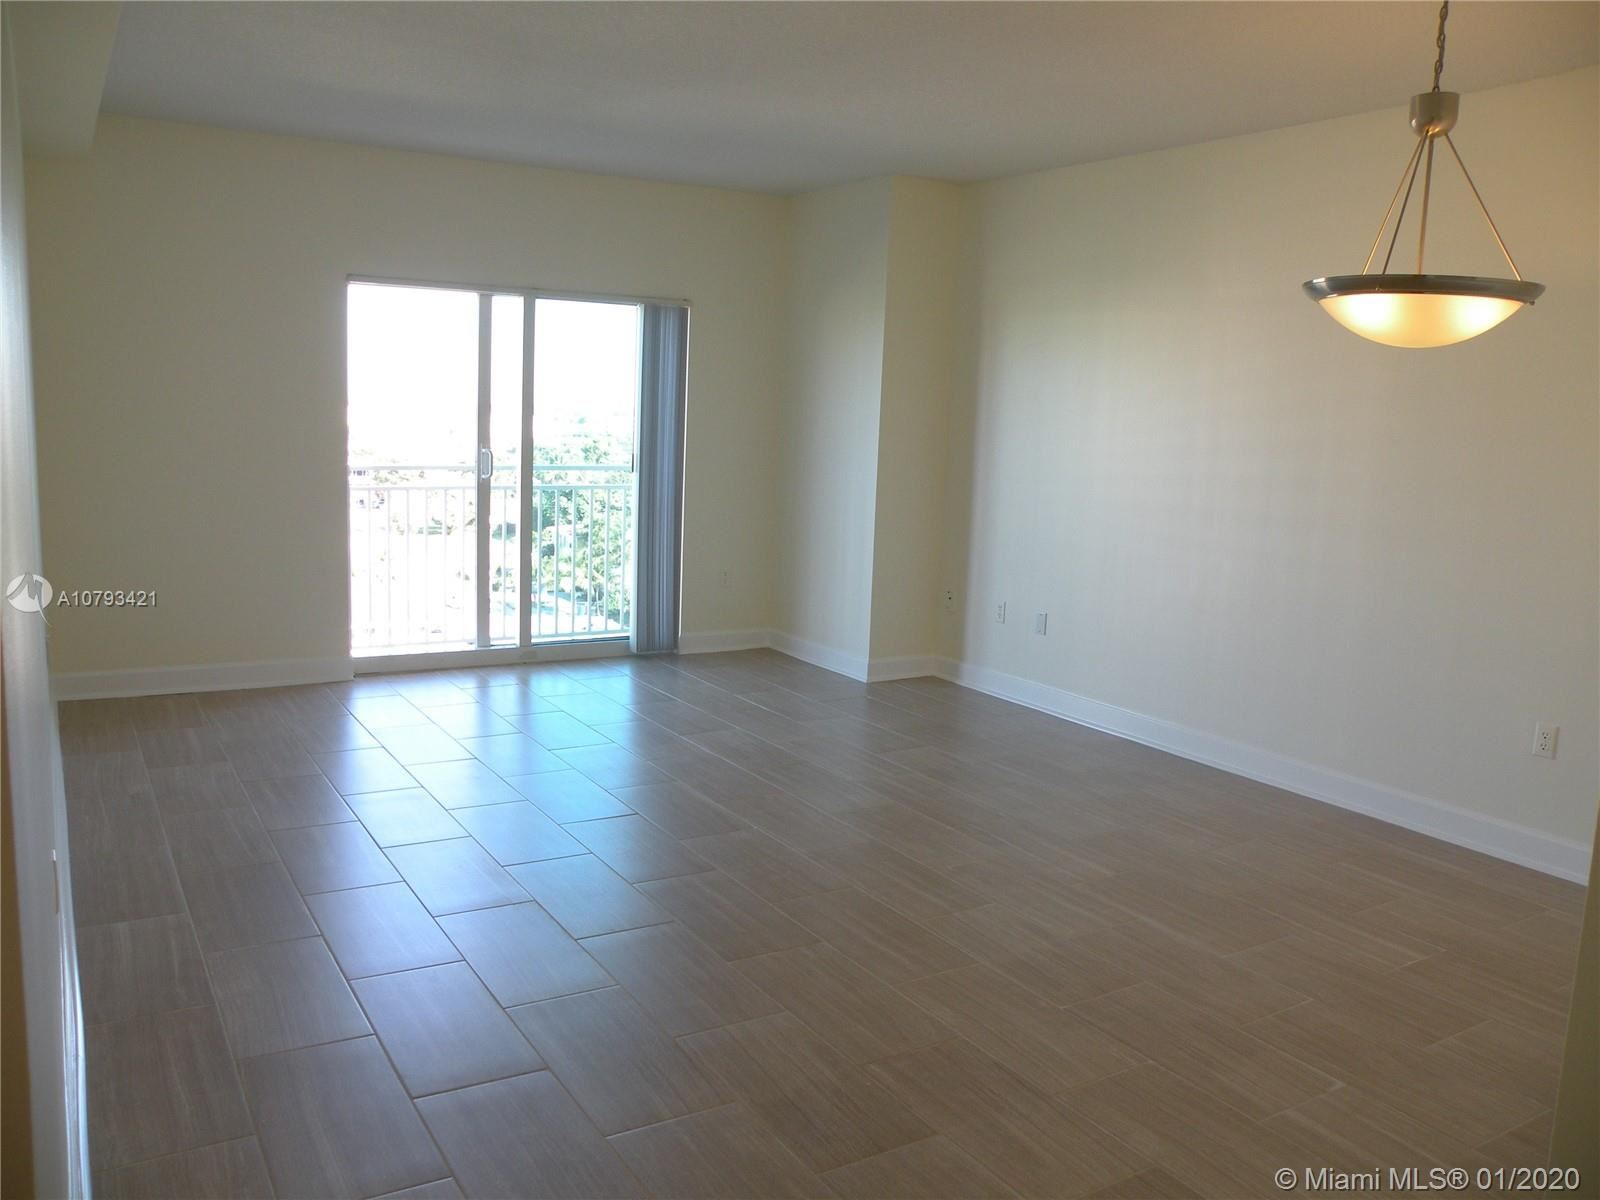 50 Menores Ave #728, Coral Gables, FL 33134 - #: A10793421